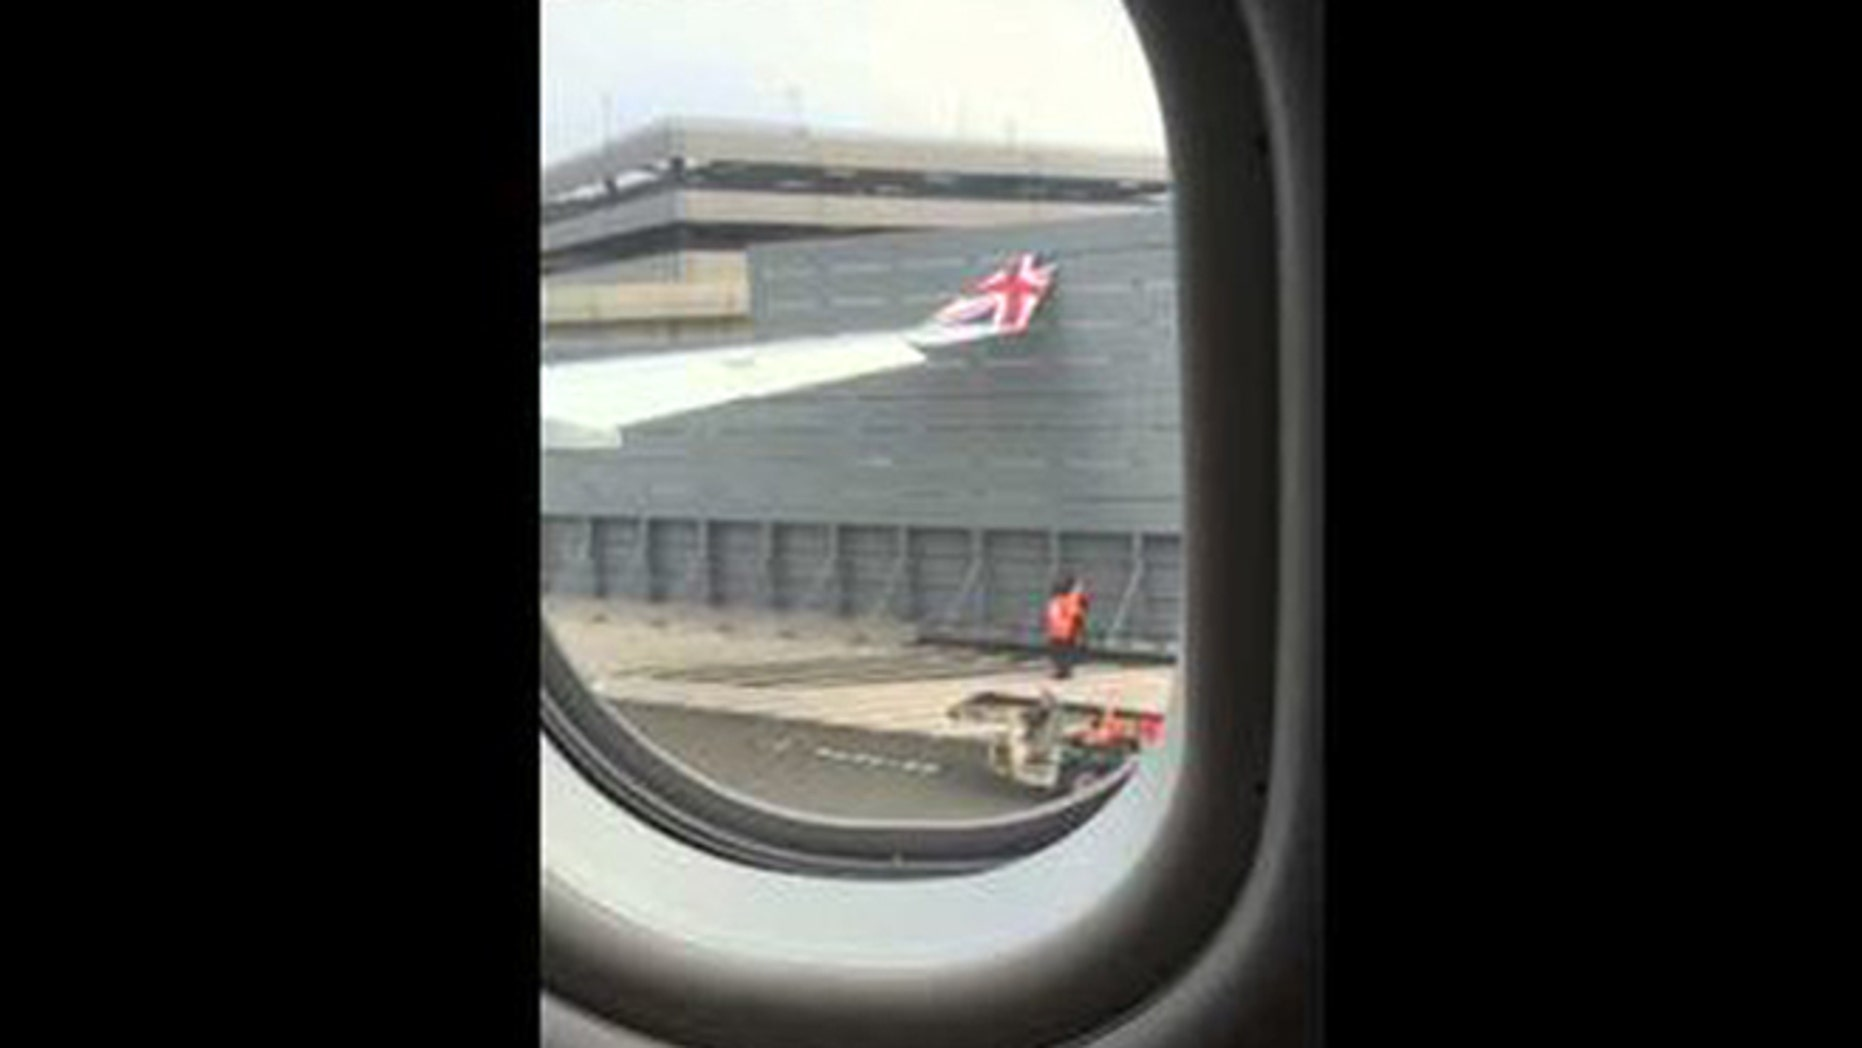 The wing of a London-bound flight made contact with a gate at New York's John F. Kennedy International Airport in this photo.